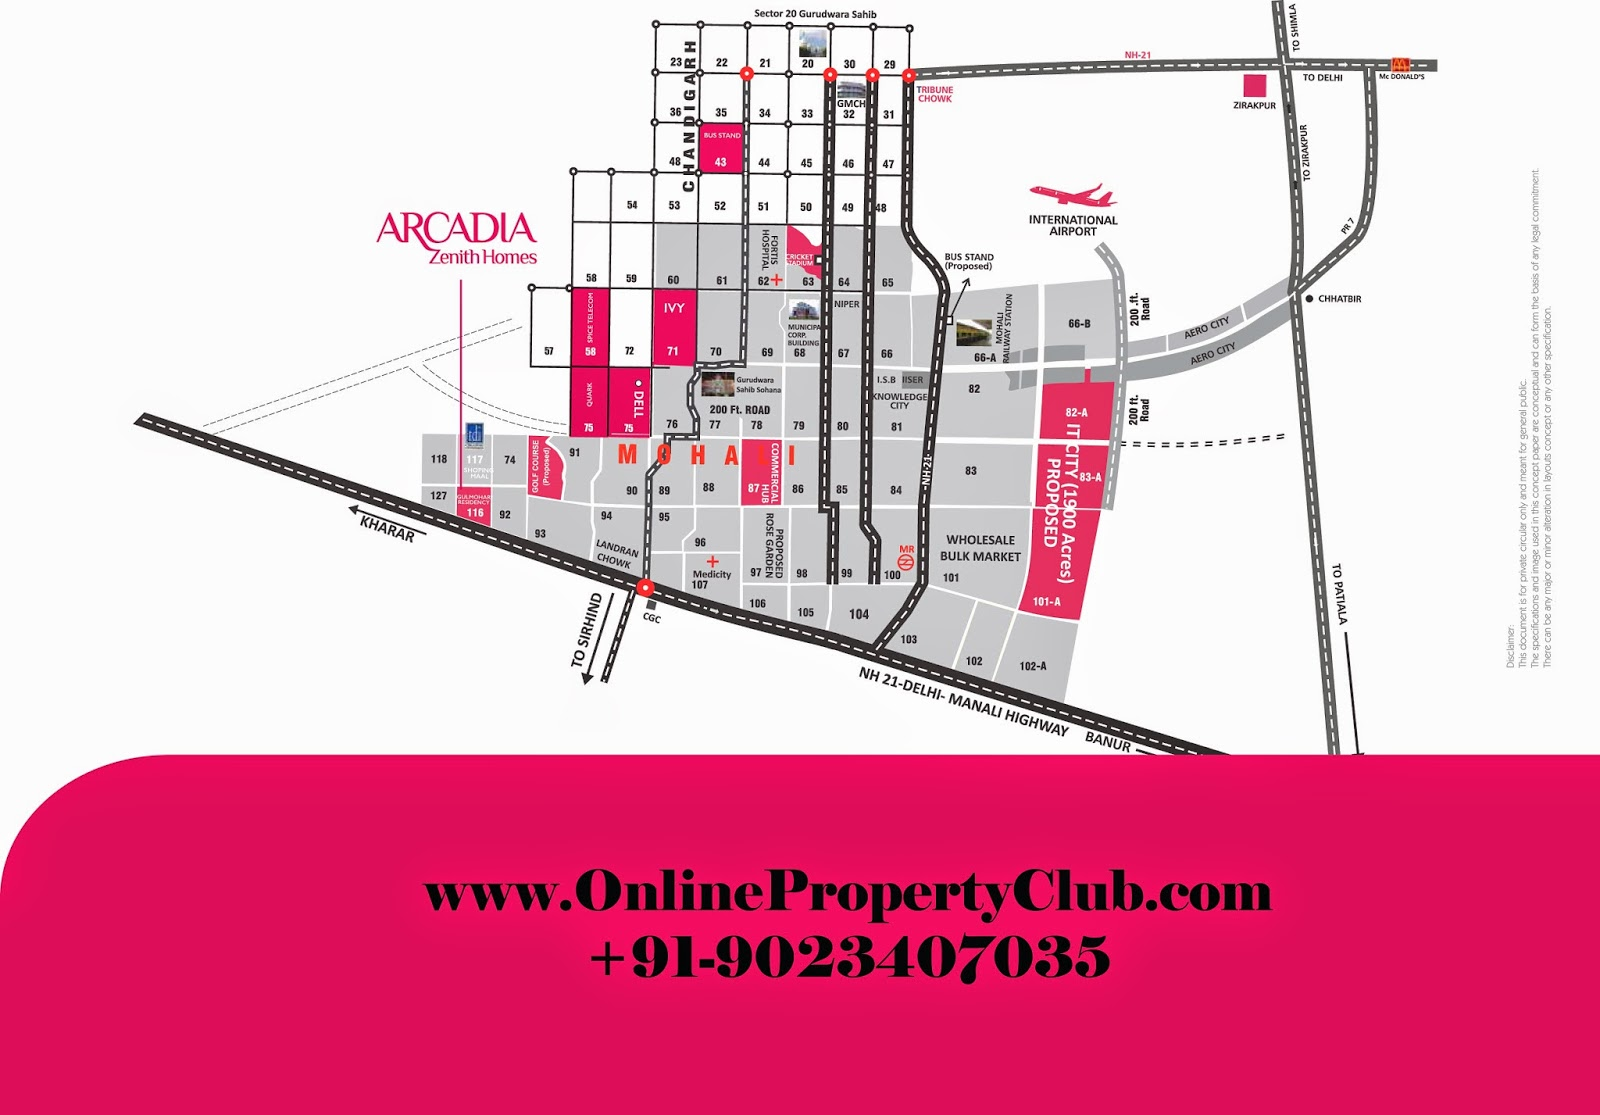 ARCADIA Zenith Homes Flats in Sector 116 - Mohali